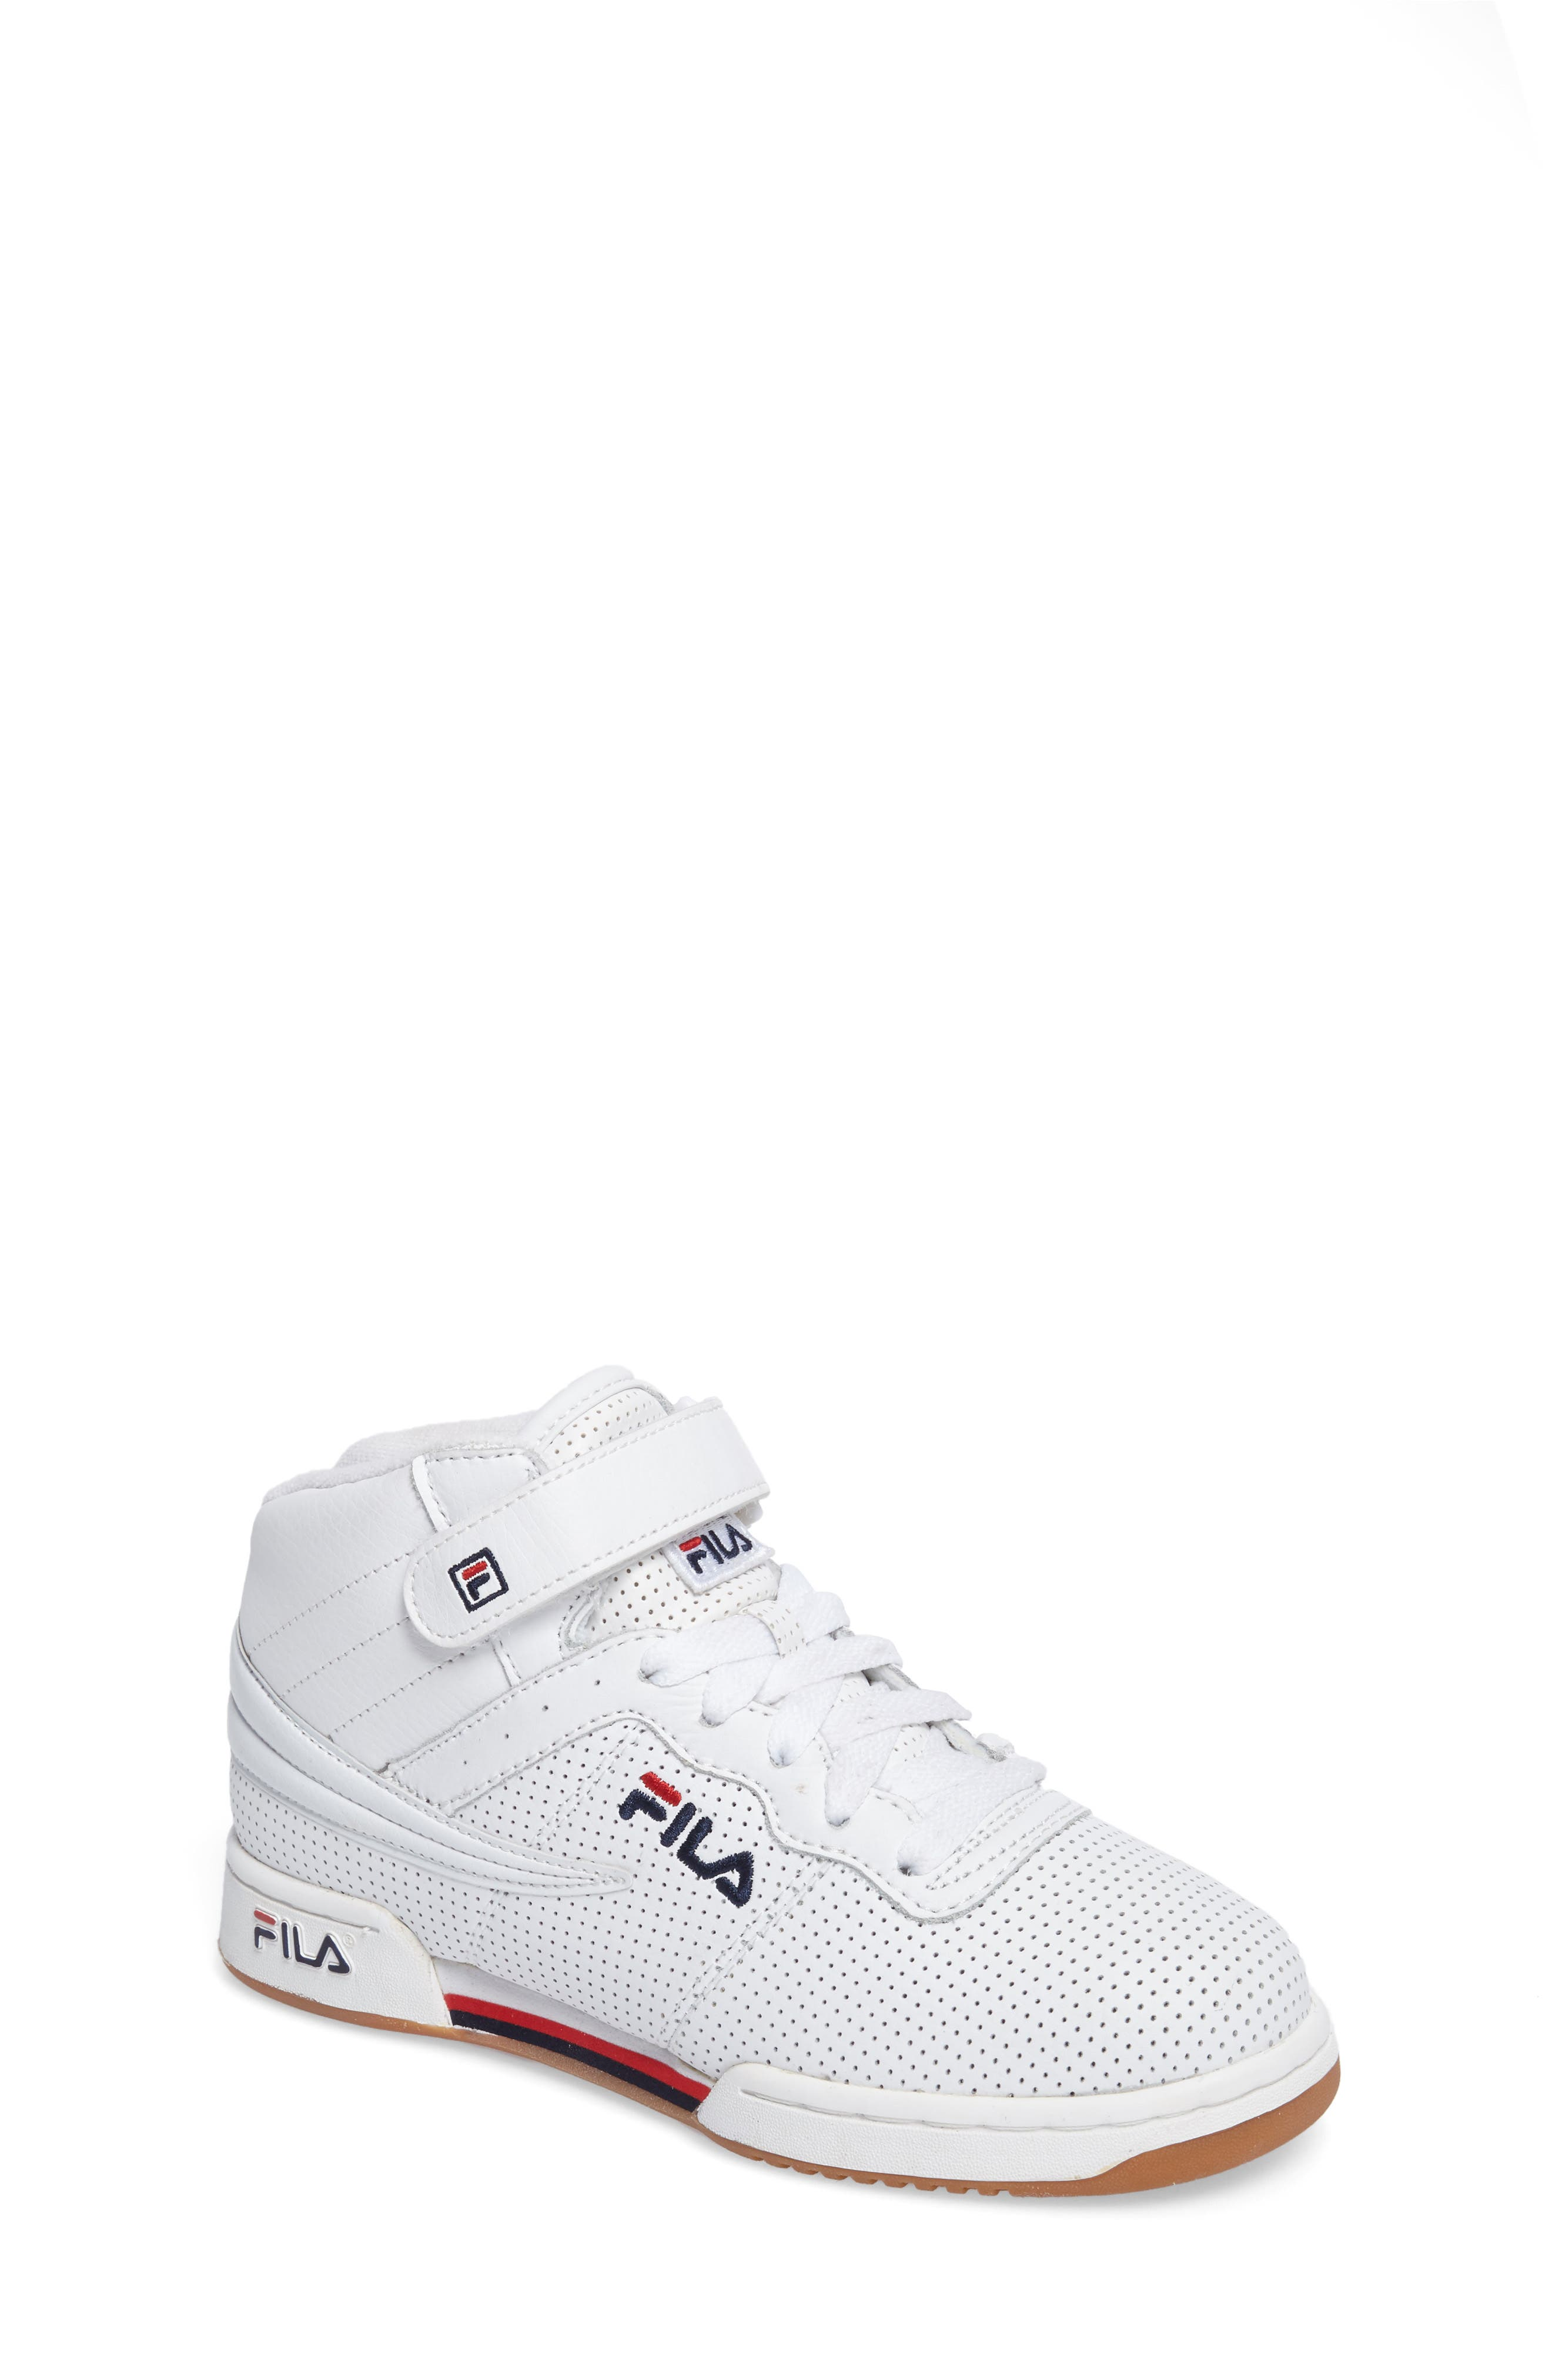 F-13 Perforated High Top Sneaker,                         Main,                         color, 150